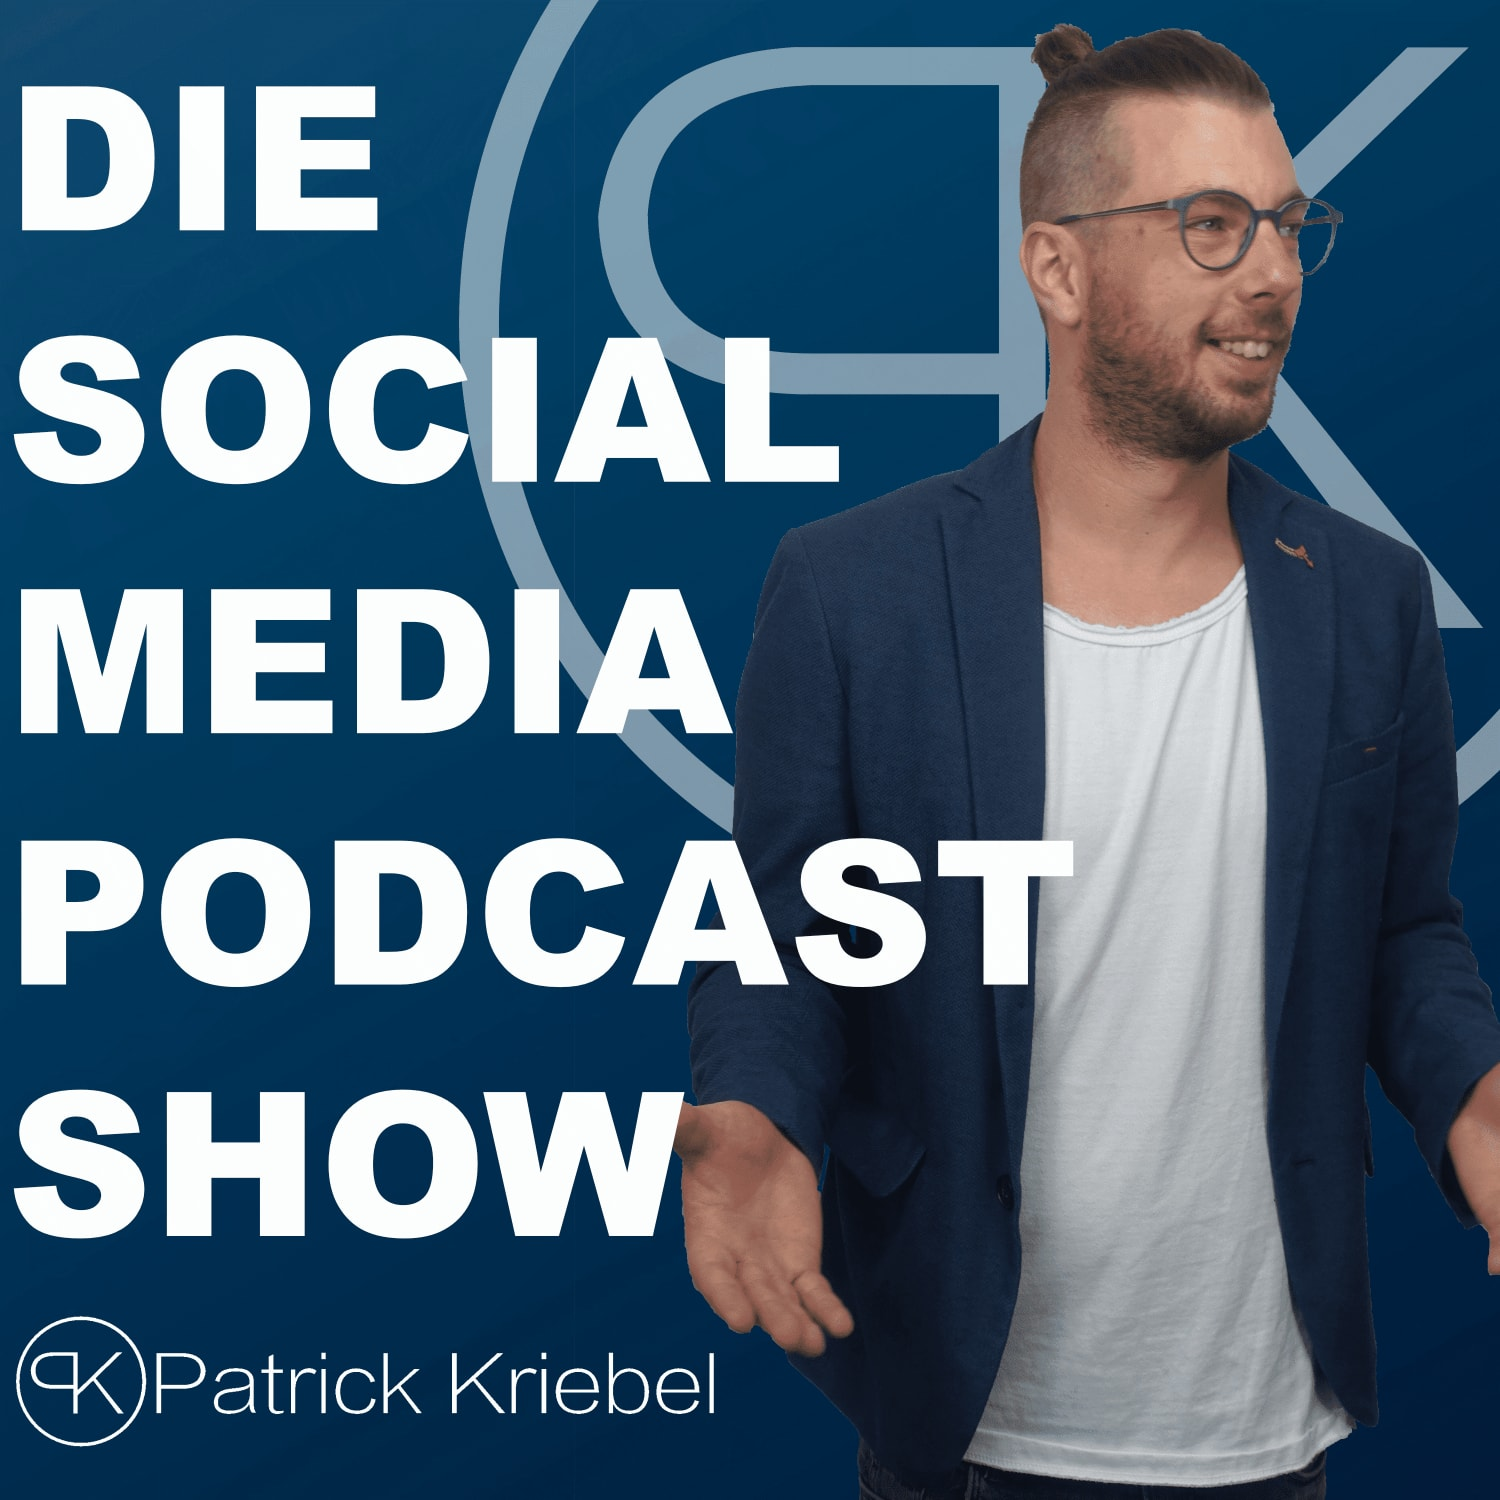 Die Social Media Podcast Show - Alles rund um Facebook, Snapchat, Instagram & Co.